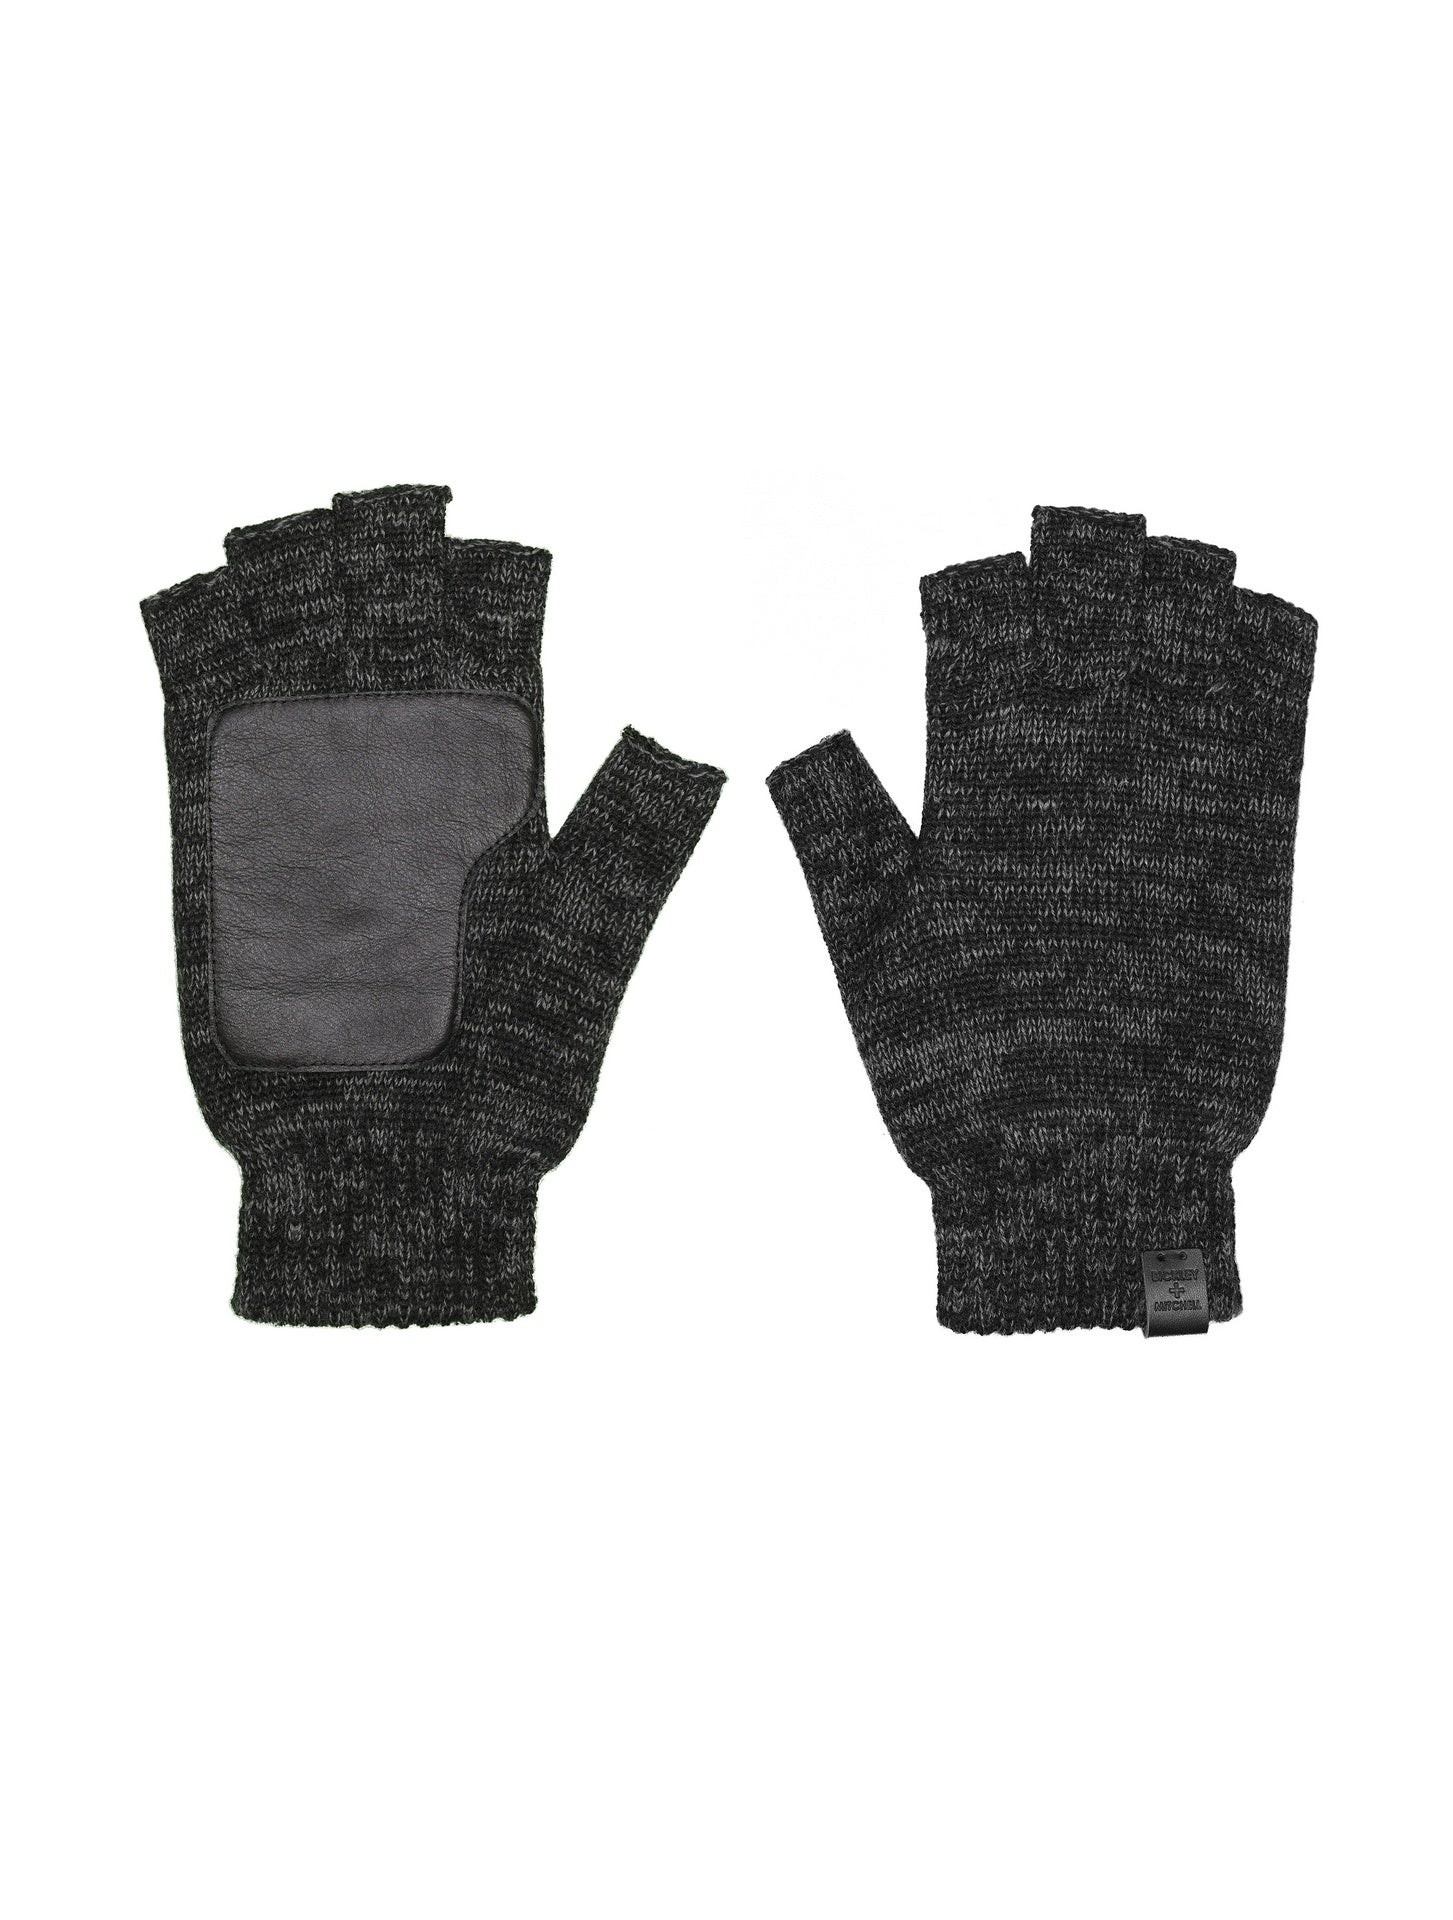 Bickley + Mitchell Fingerless Gloves